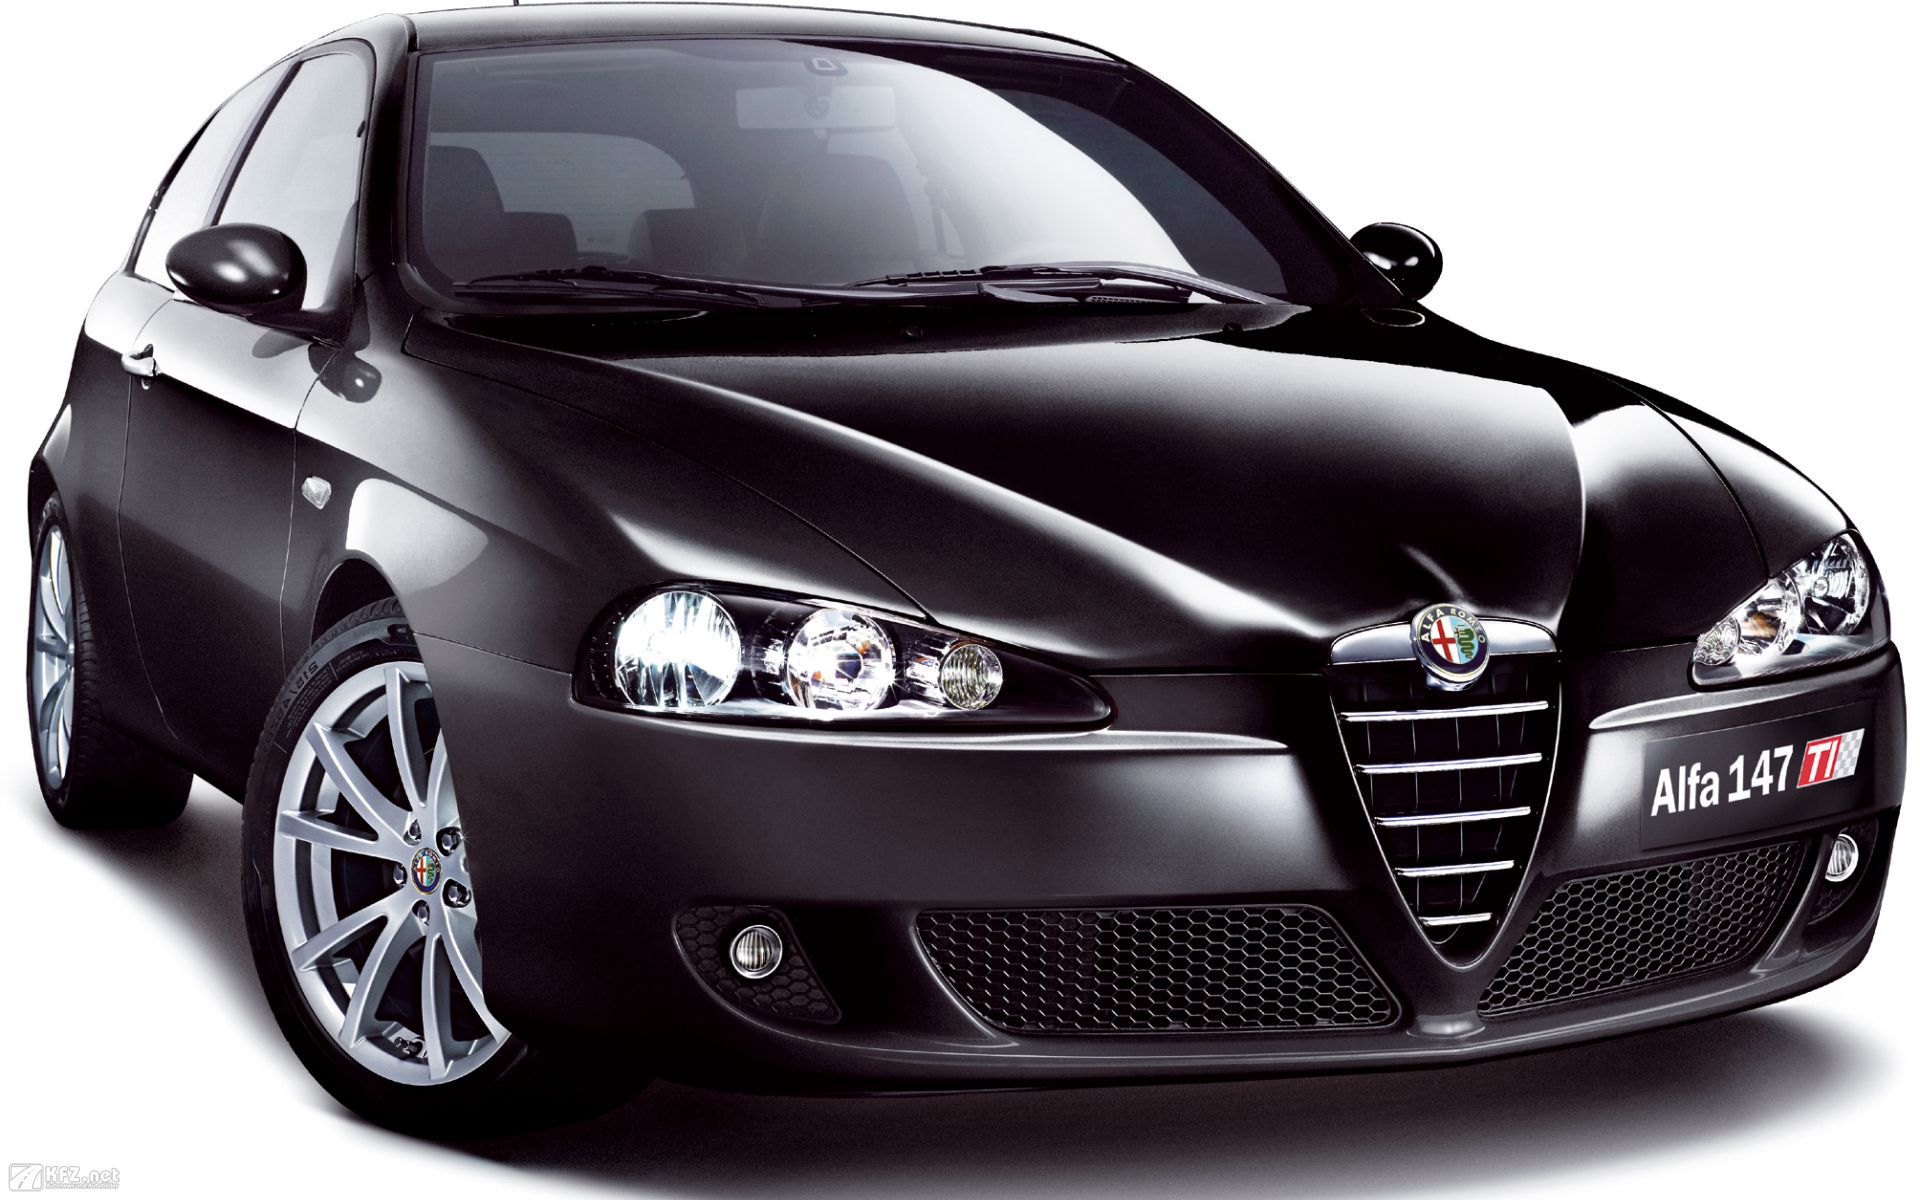 1920x1200 - Alfa Romeo 147 Wallpapers 27